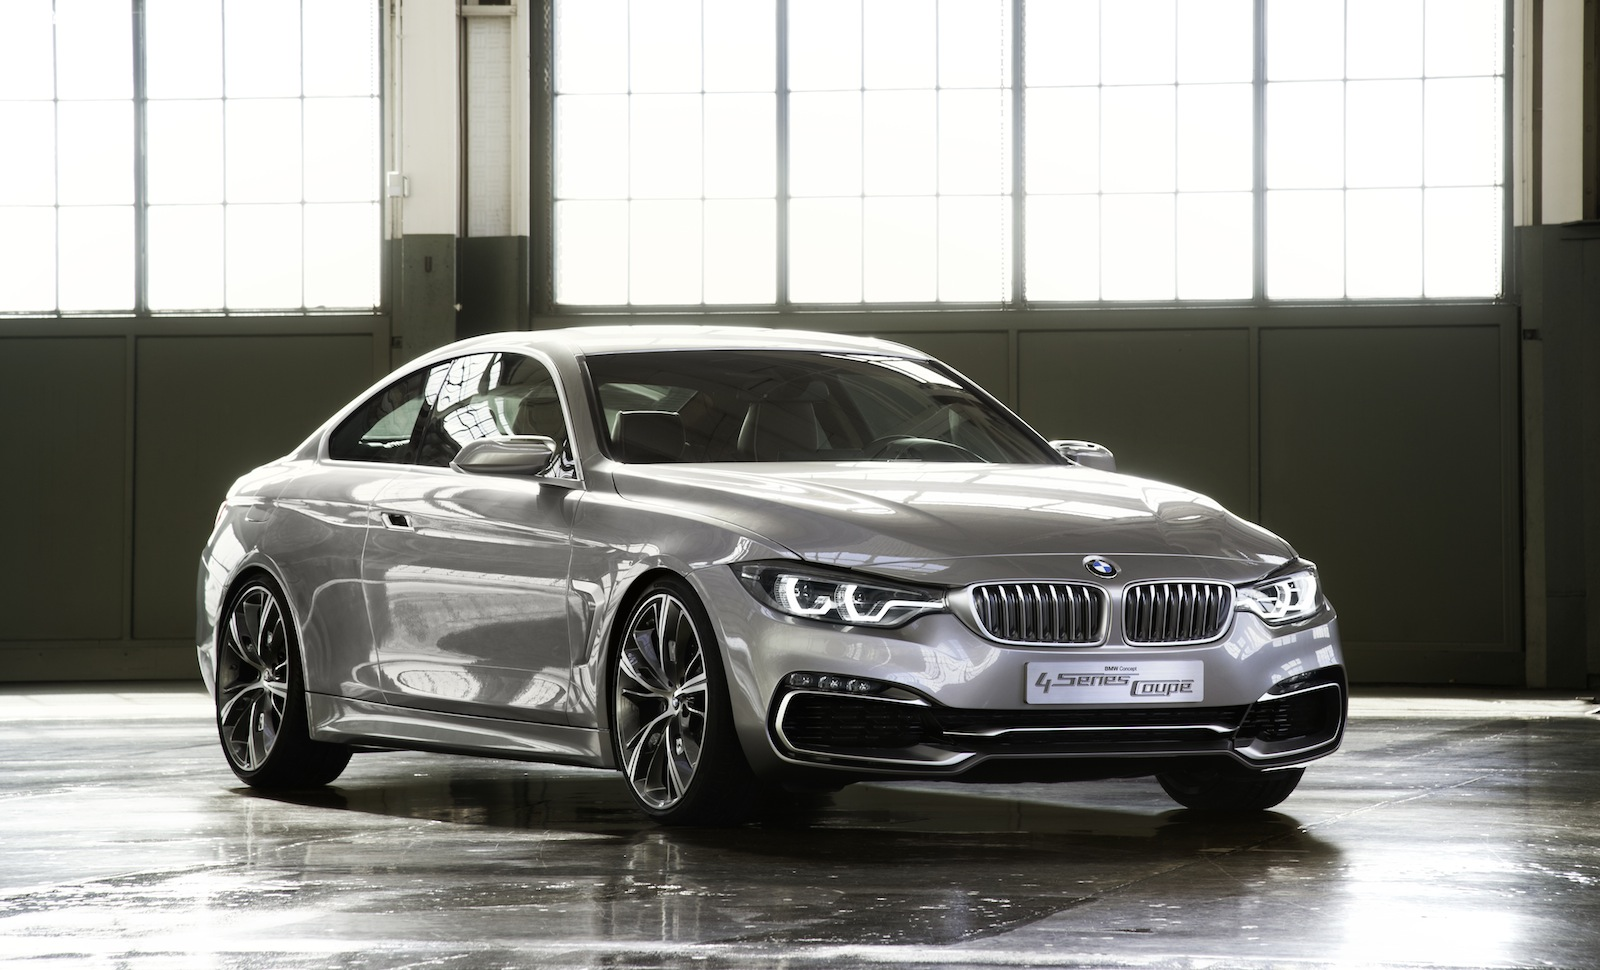 bmw 4 series coupe concept revealed photos 1 of 18. Black Bedroom Furniture Sets. Home Design Ideas